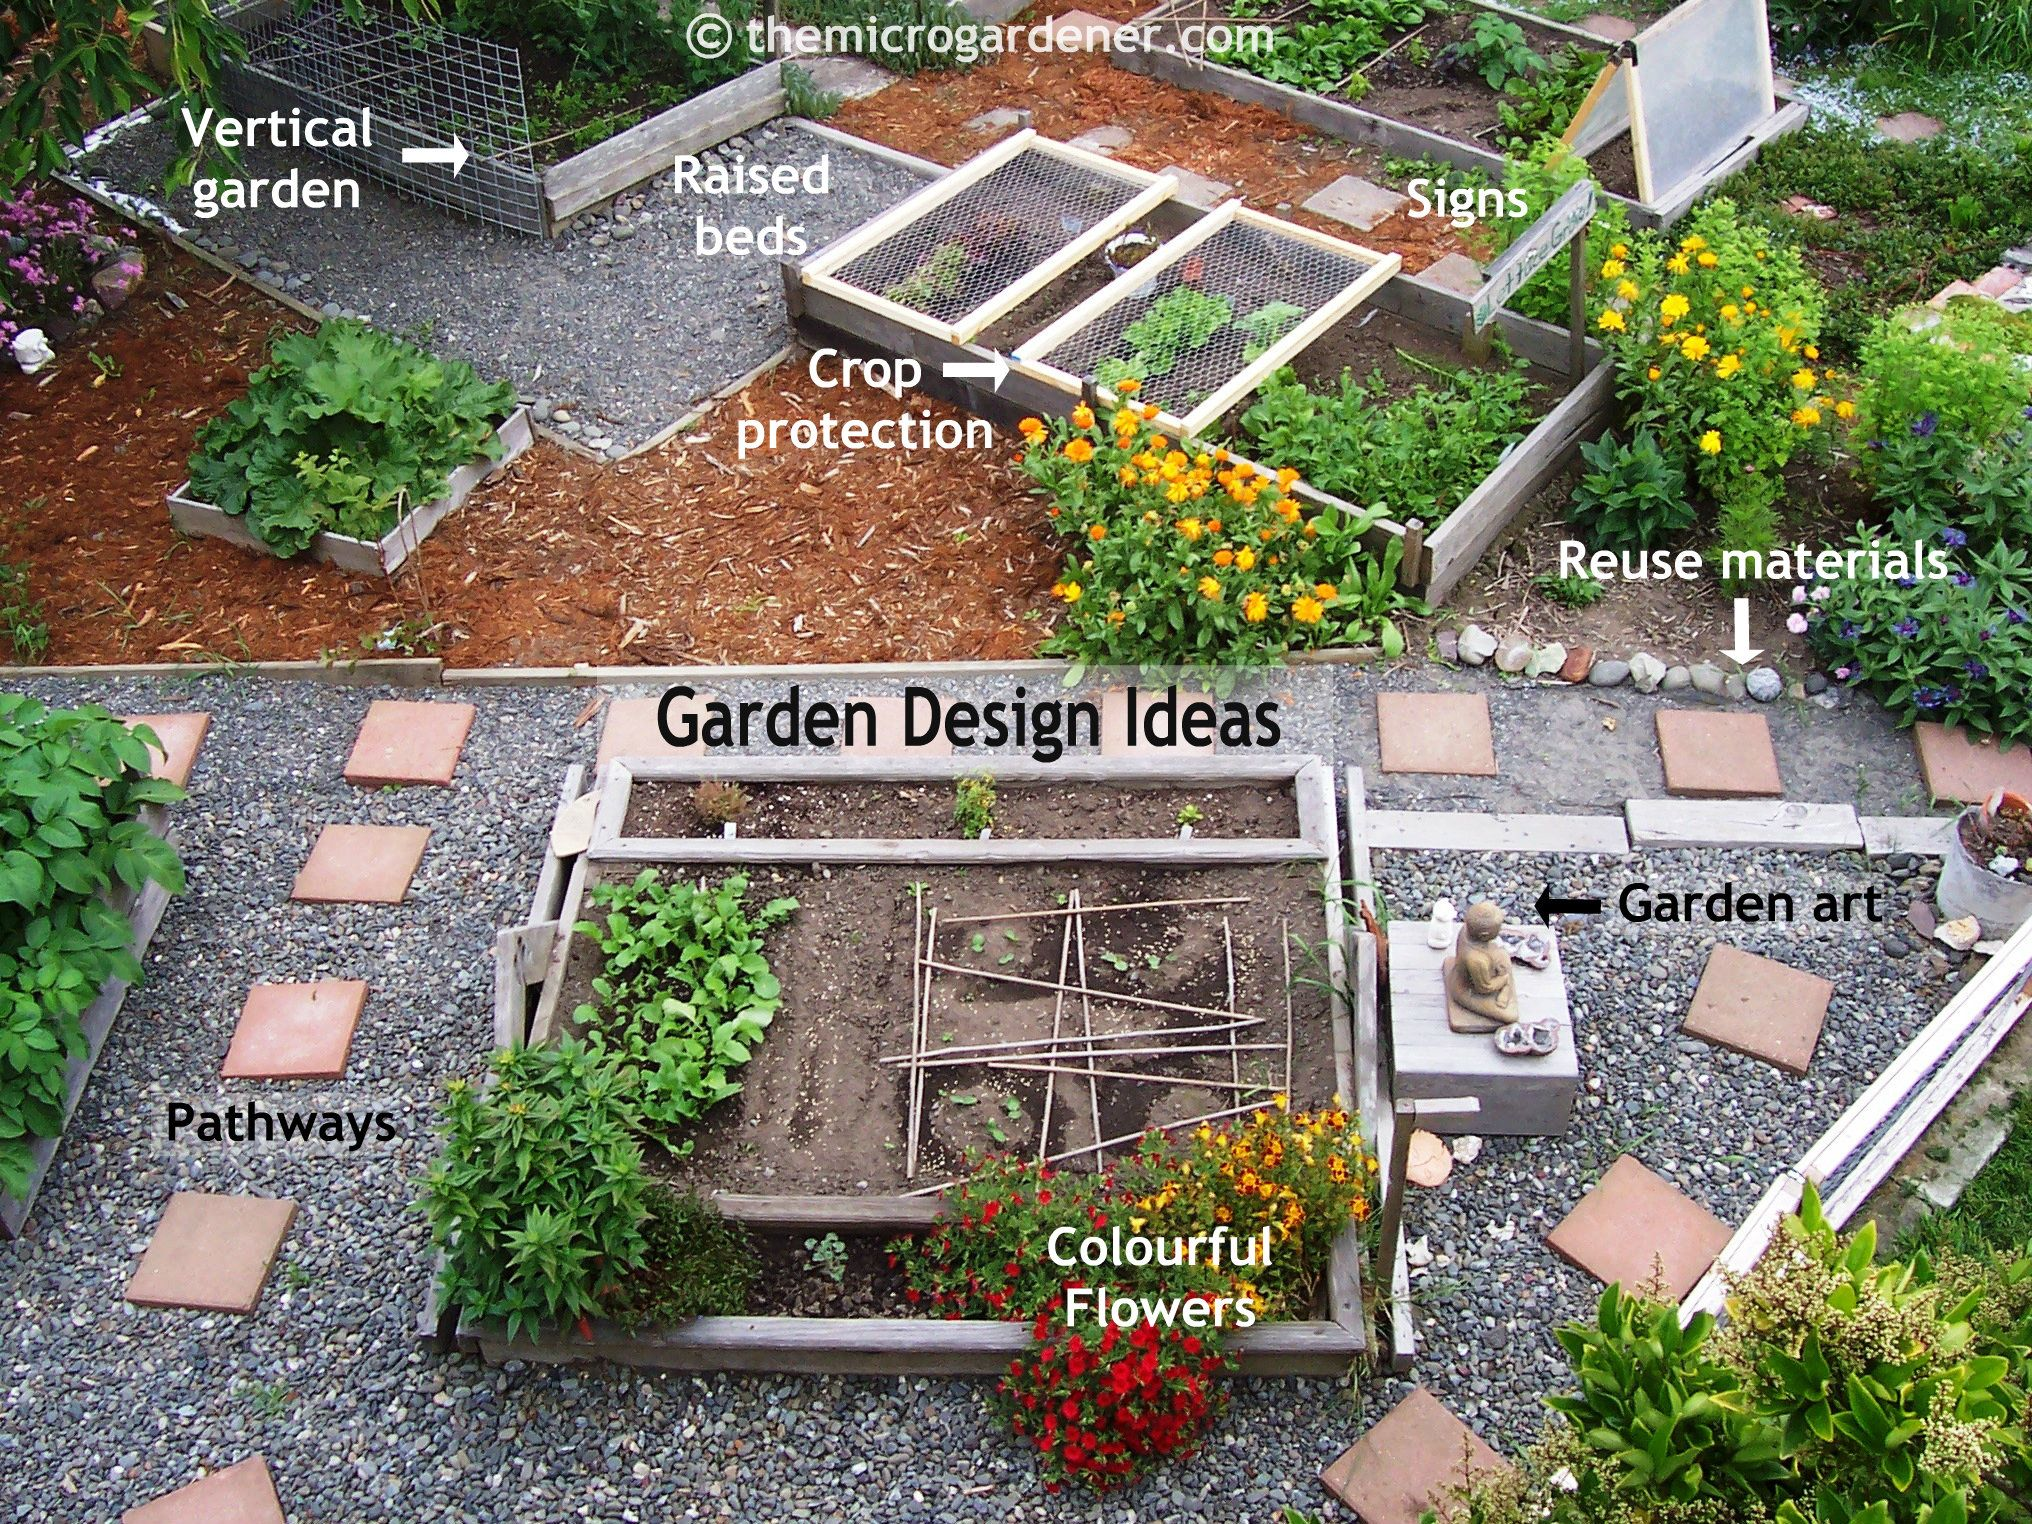 Small garden design ideas on pinterest vertical gardens for House and garden kitchen designs